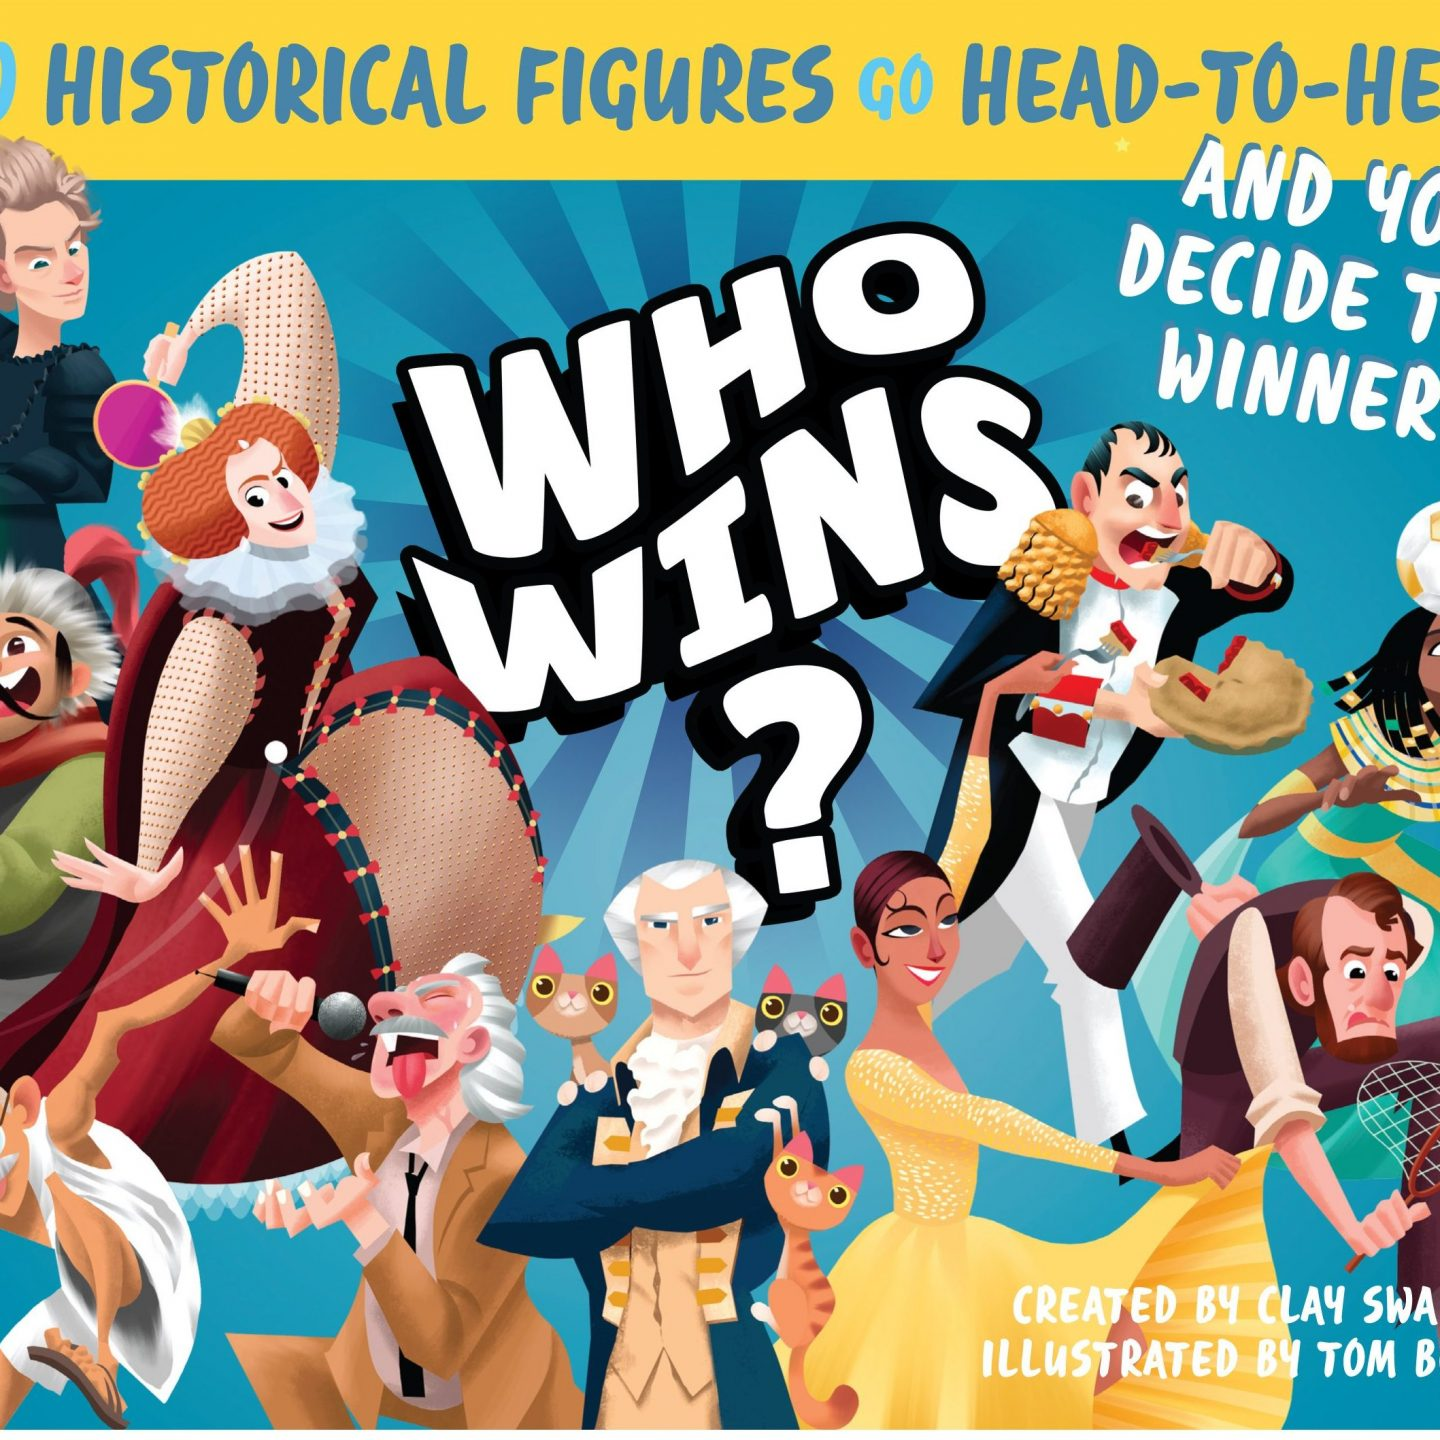 MG Book Review: Who Wins? by Clay Swartz